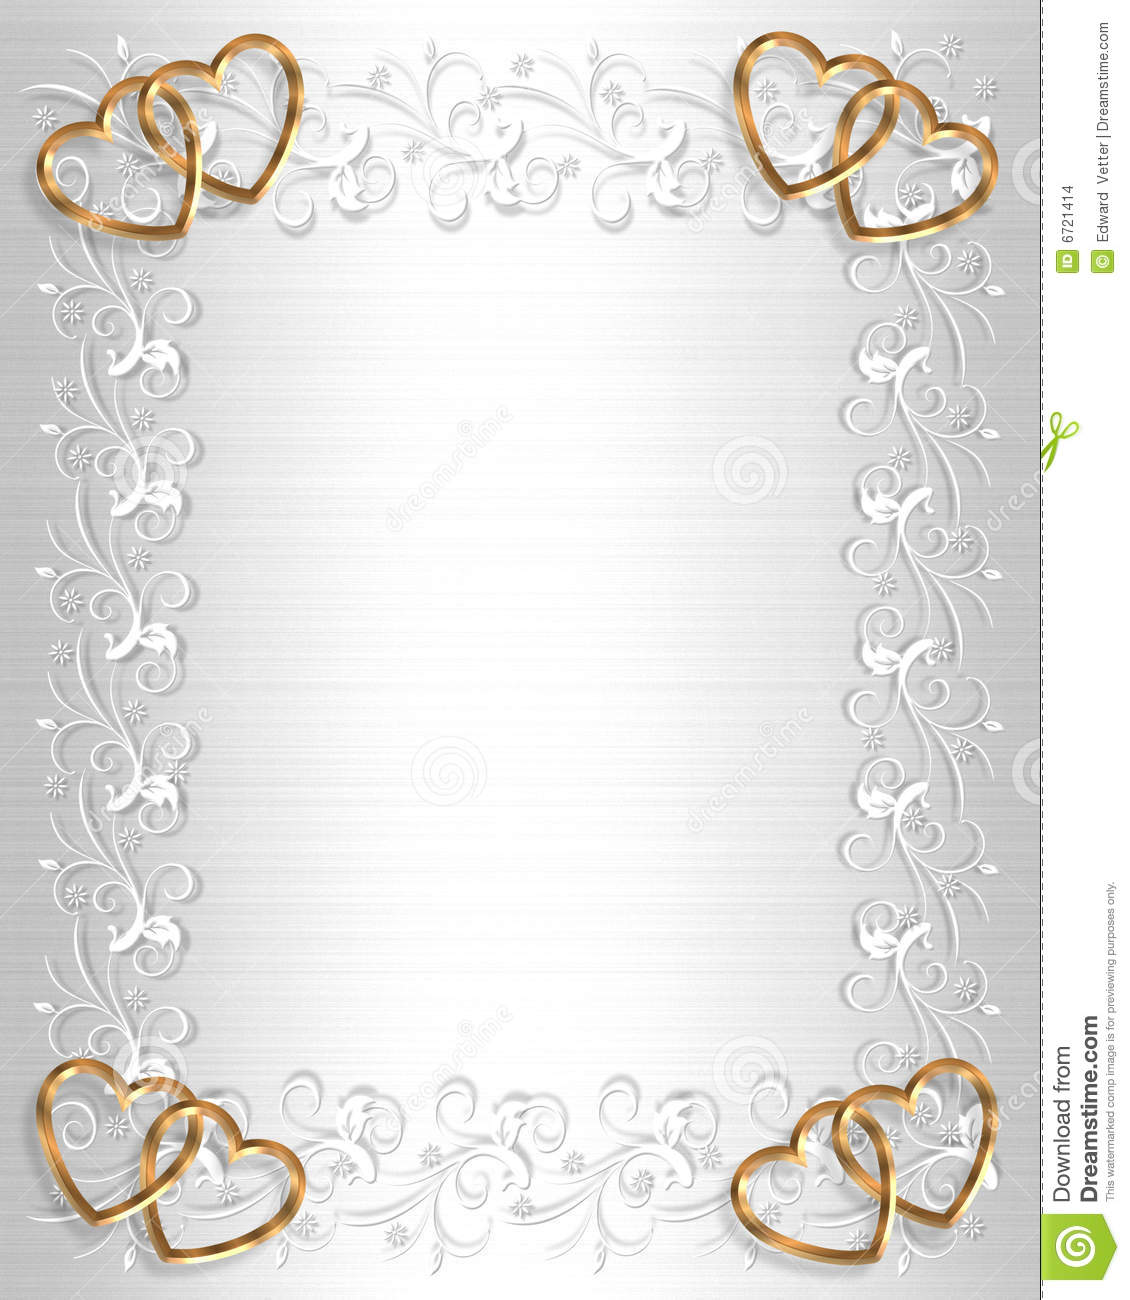 wedding borders designs